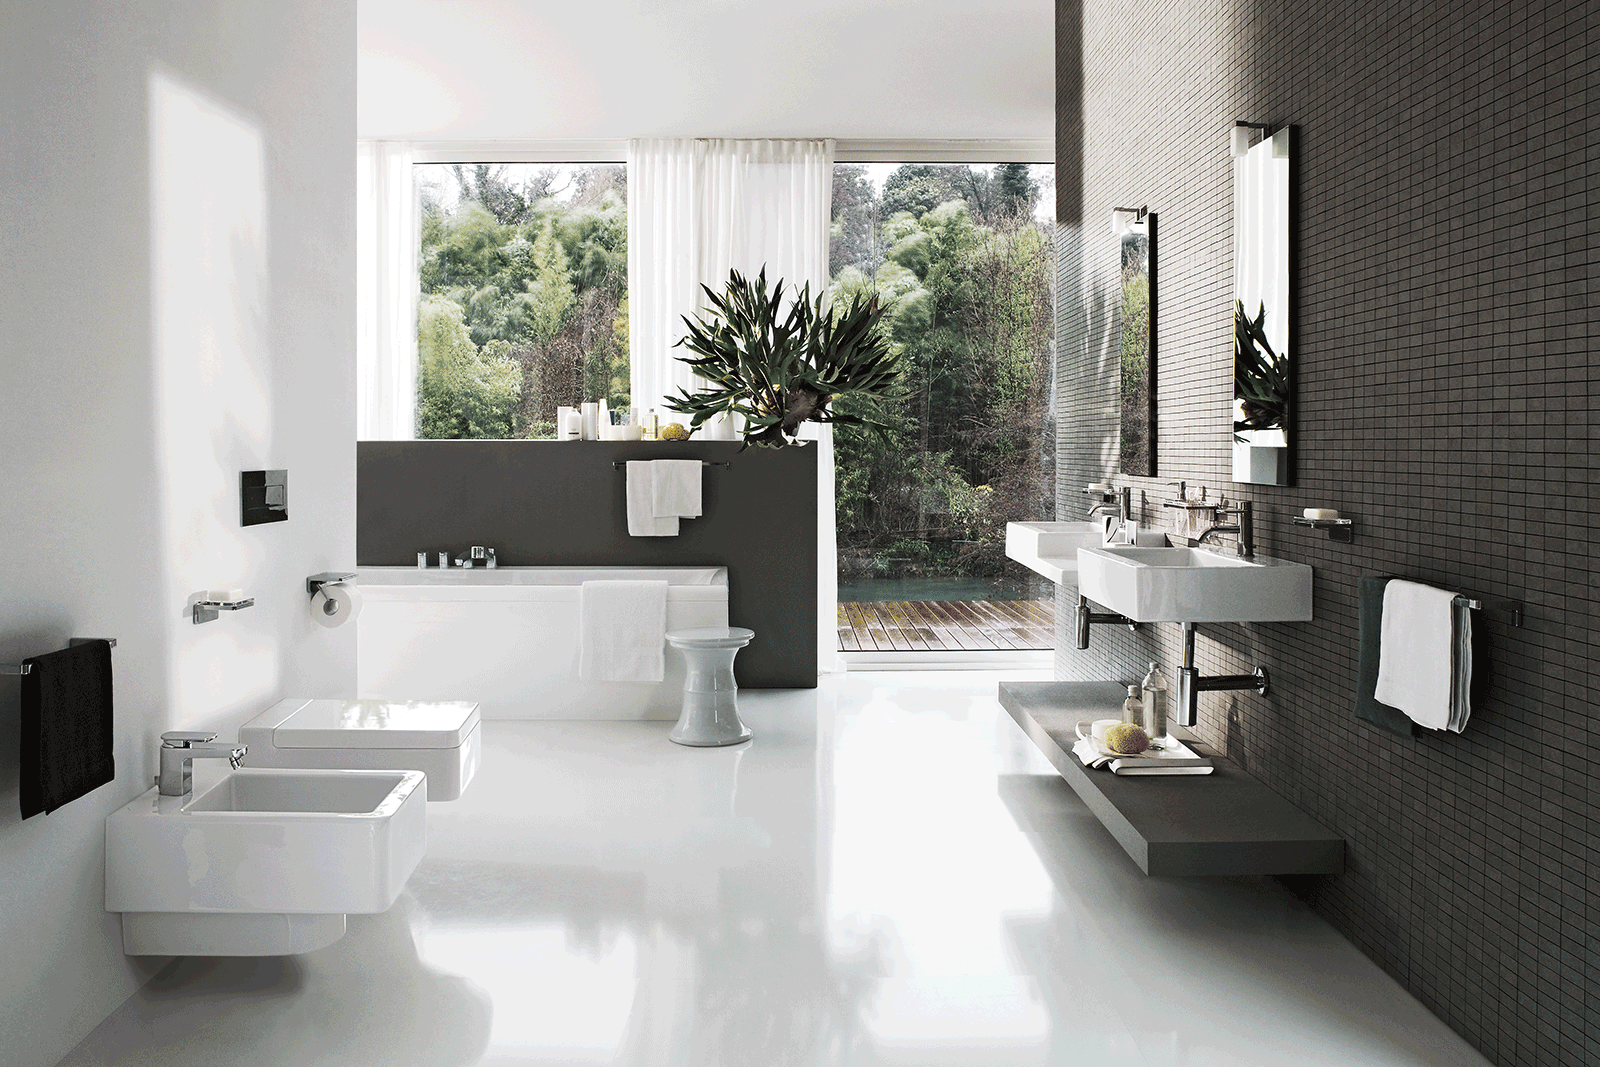 Laufen living city bathroom